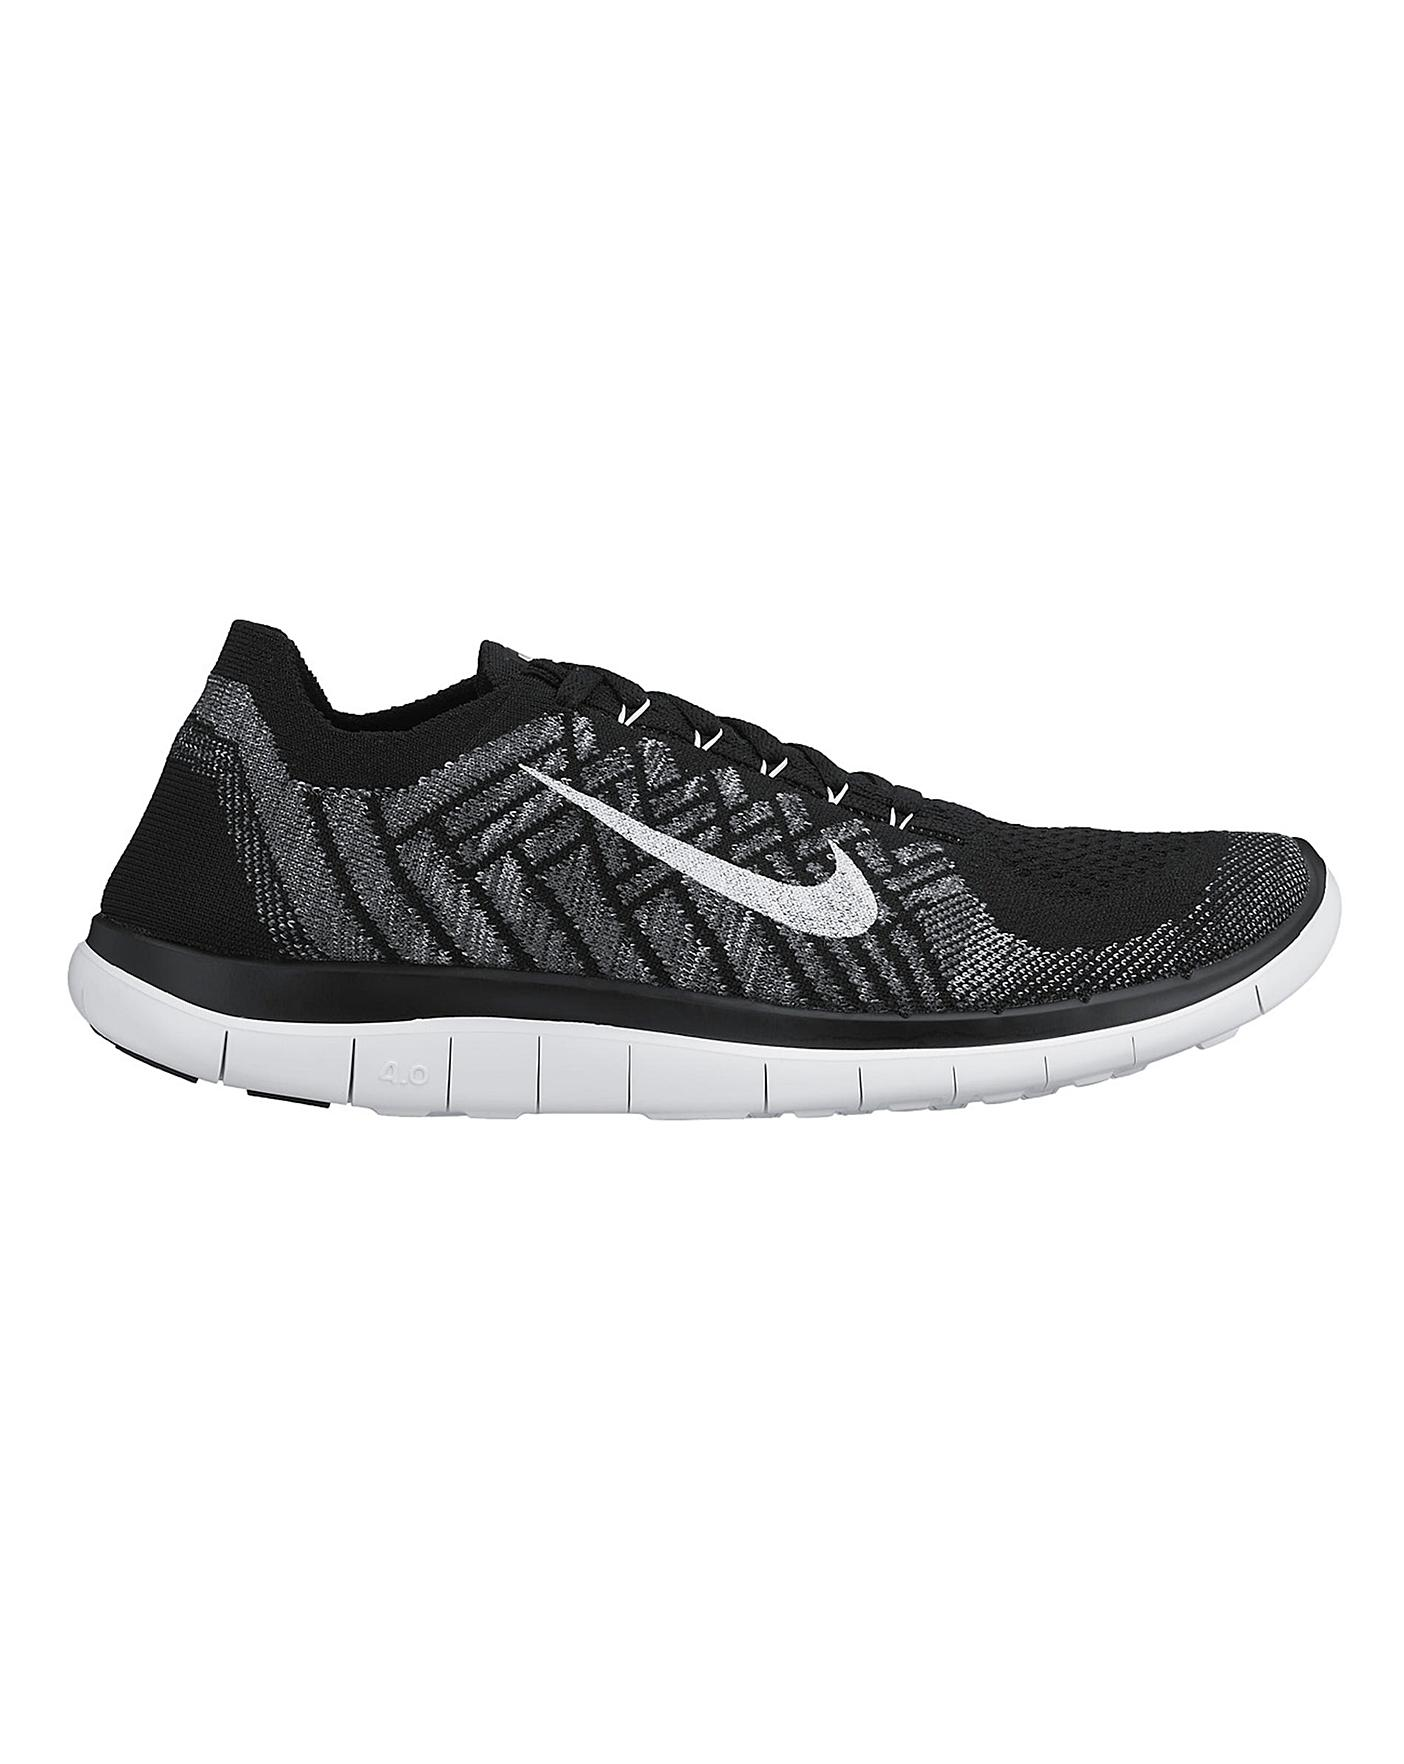 reputable site d06bd bddea Nike Flyknit 4.0 Trainers